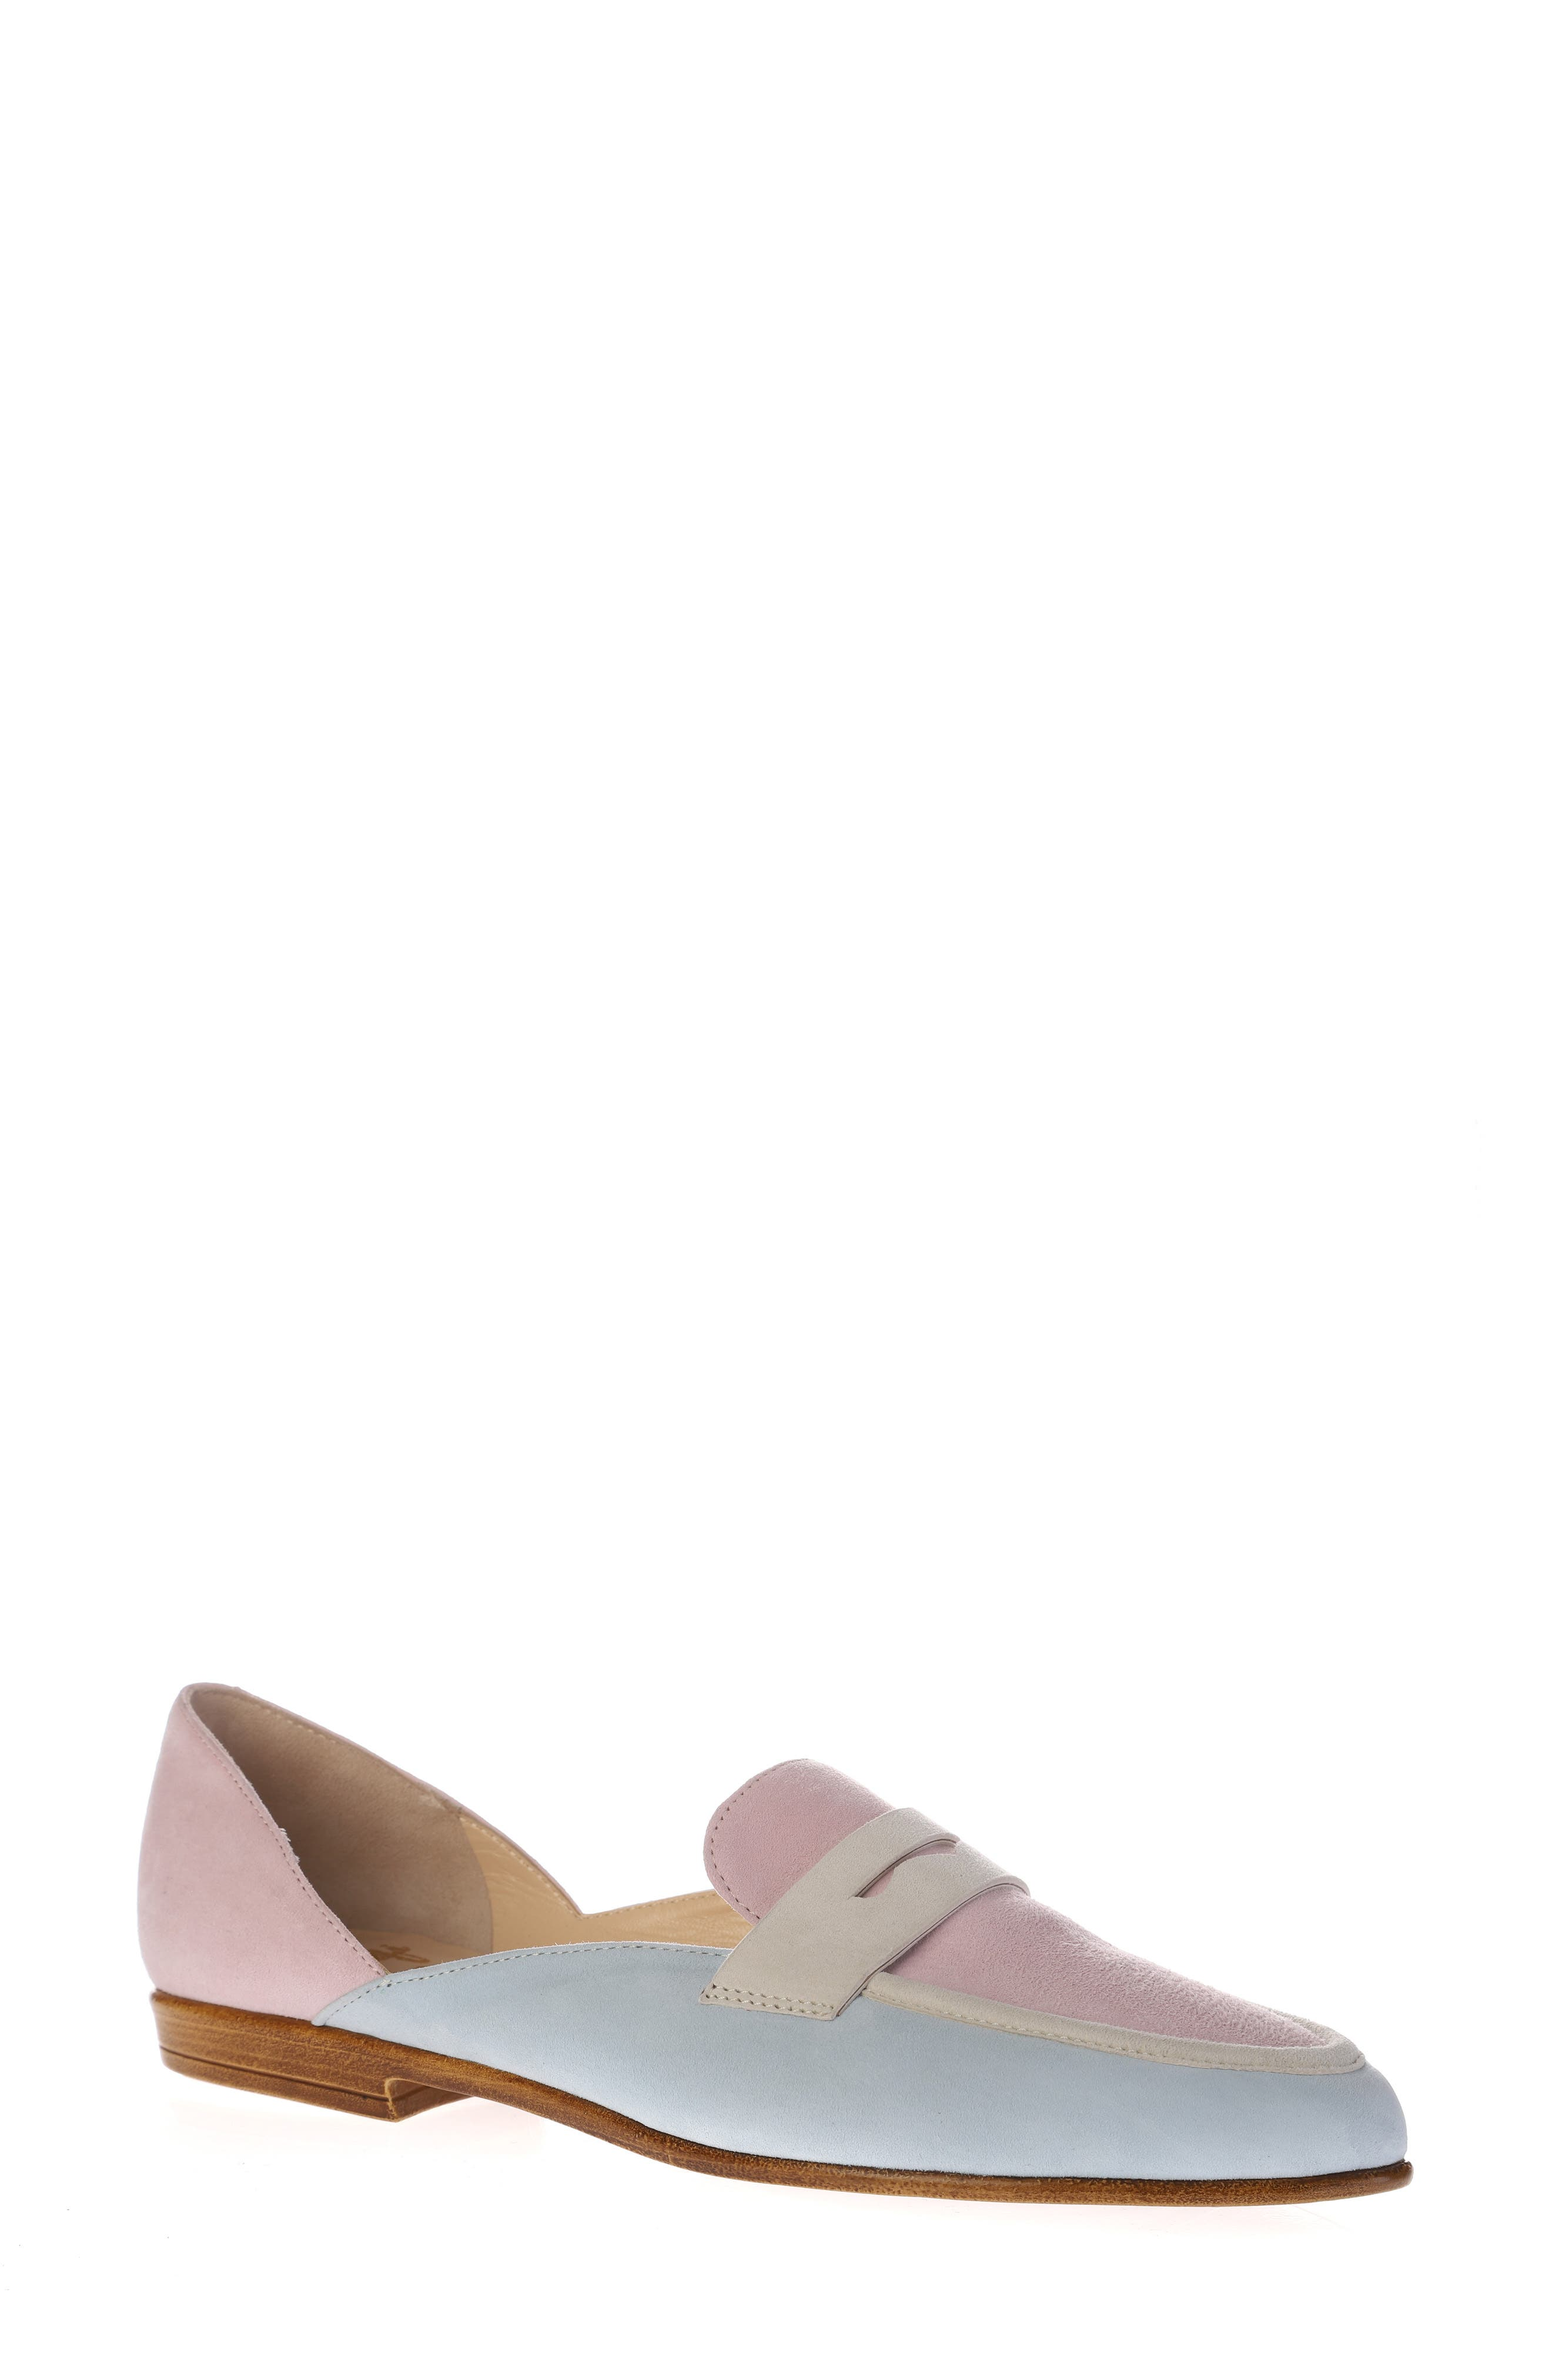 Orma Penny Loafer